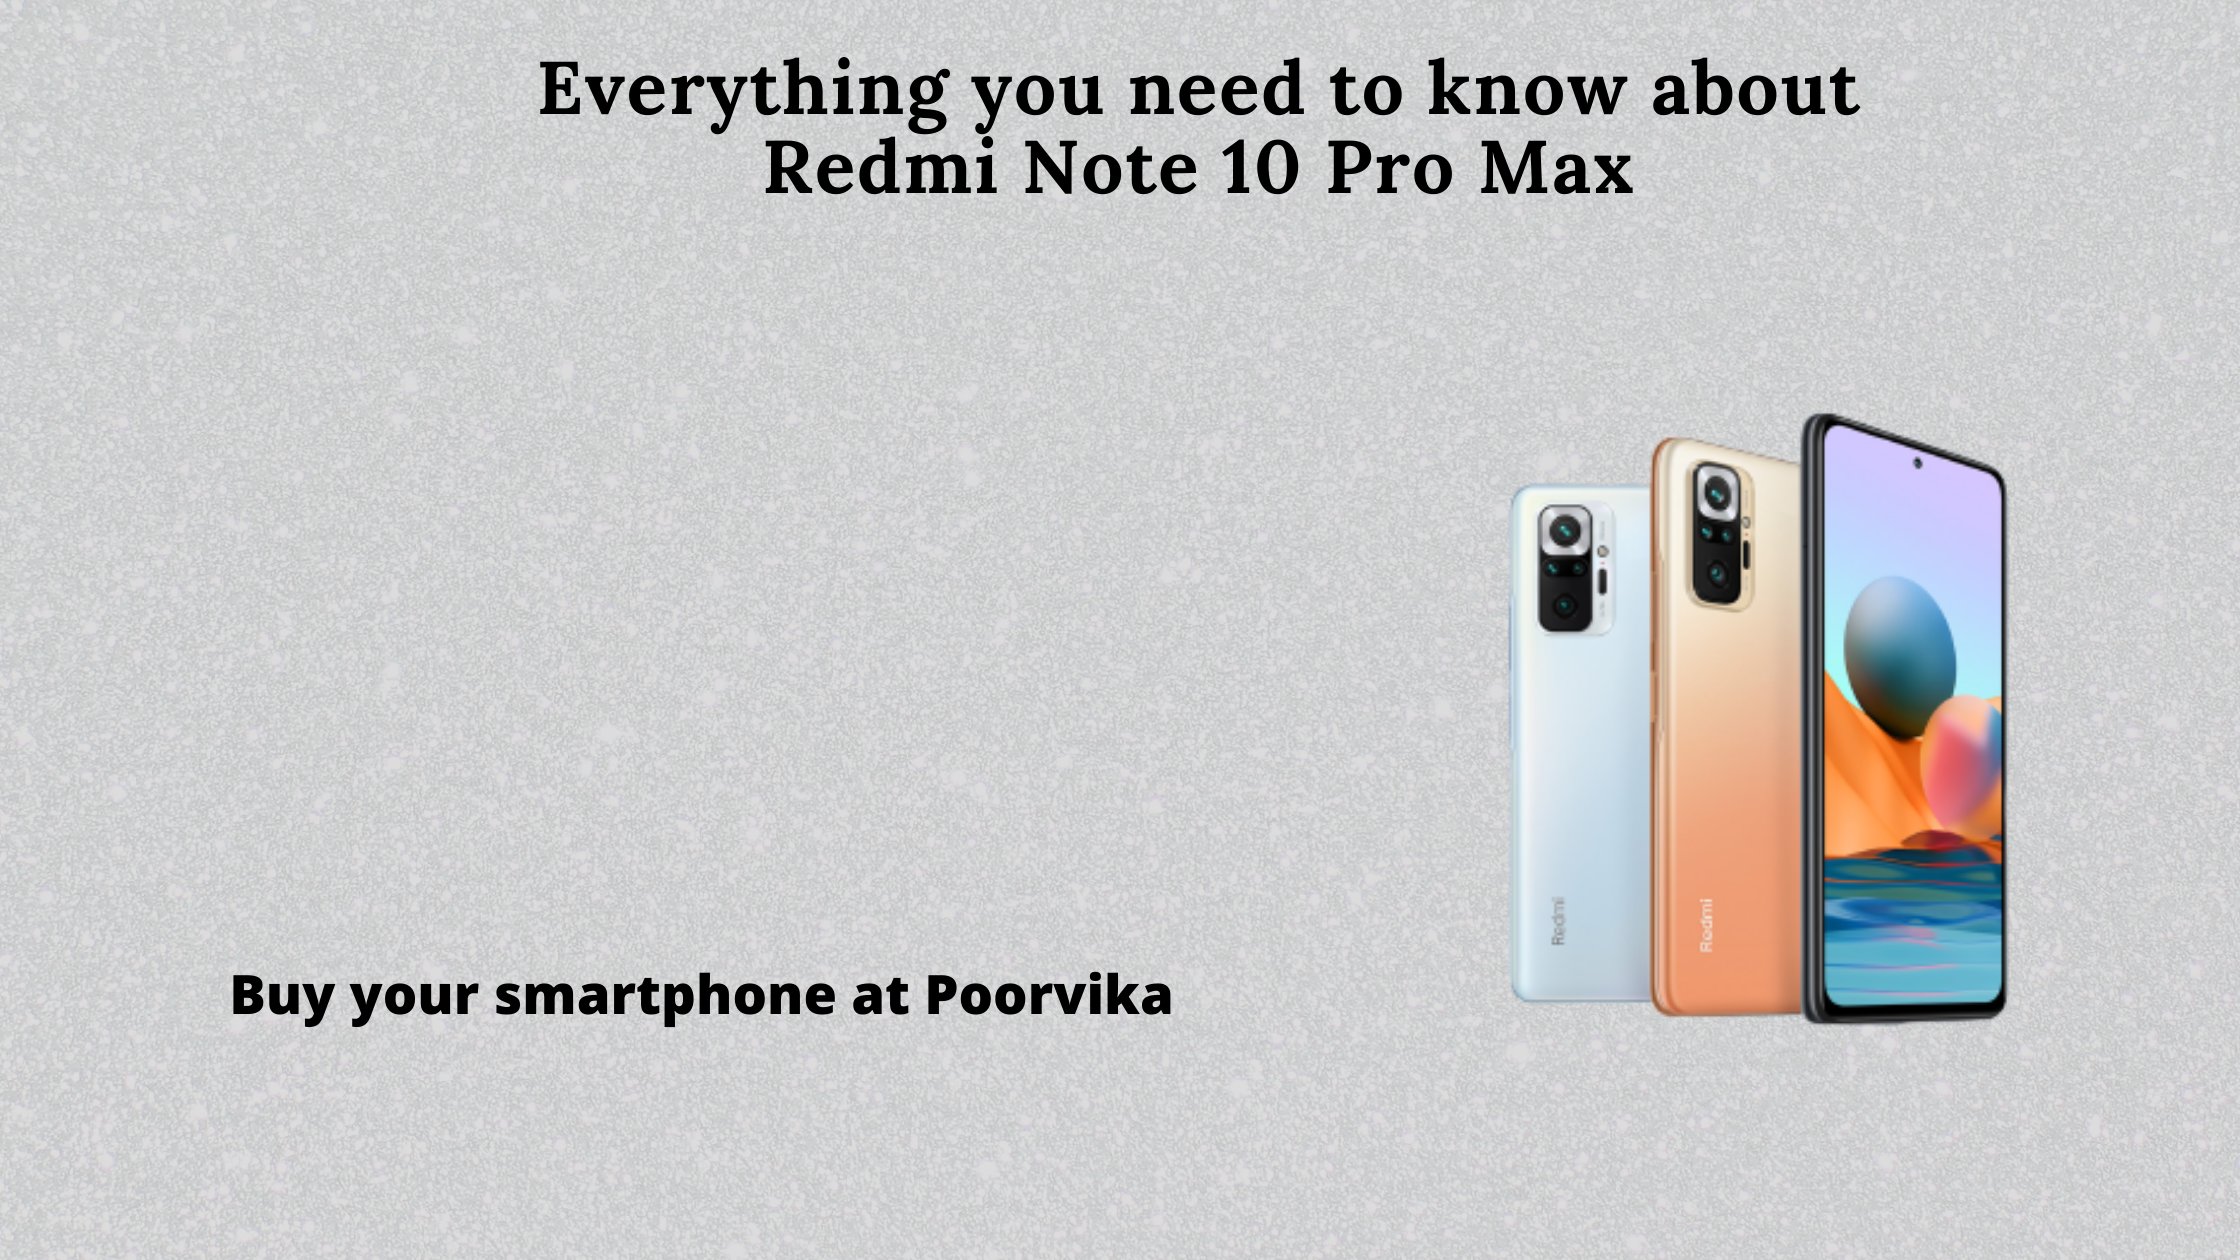 Everything you need to know about Redmi Note 10 Pro Max